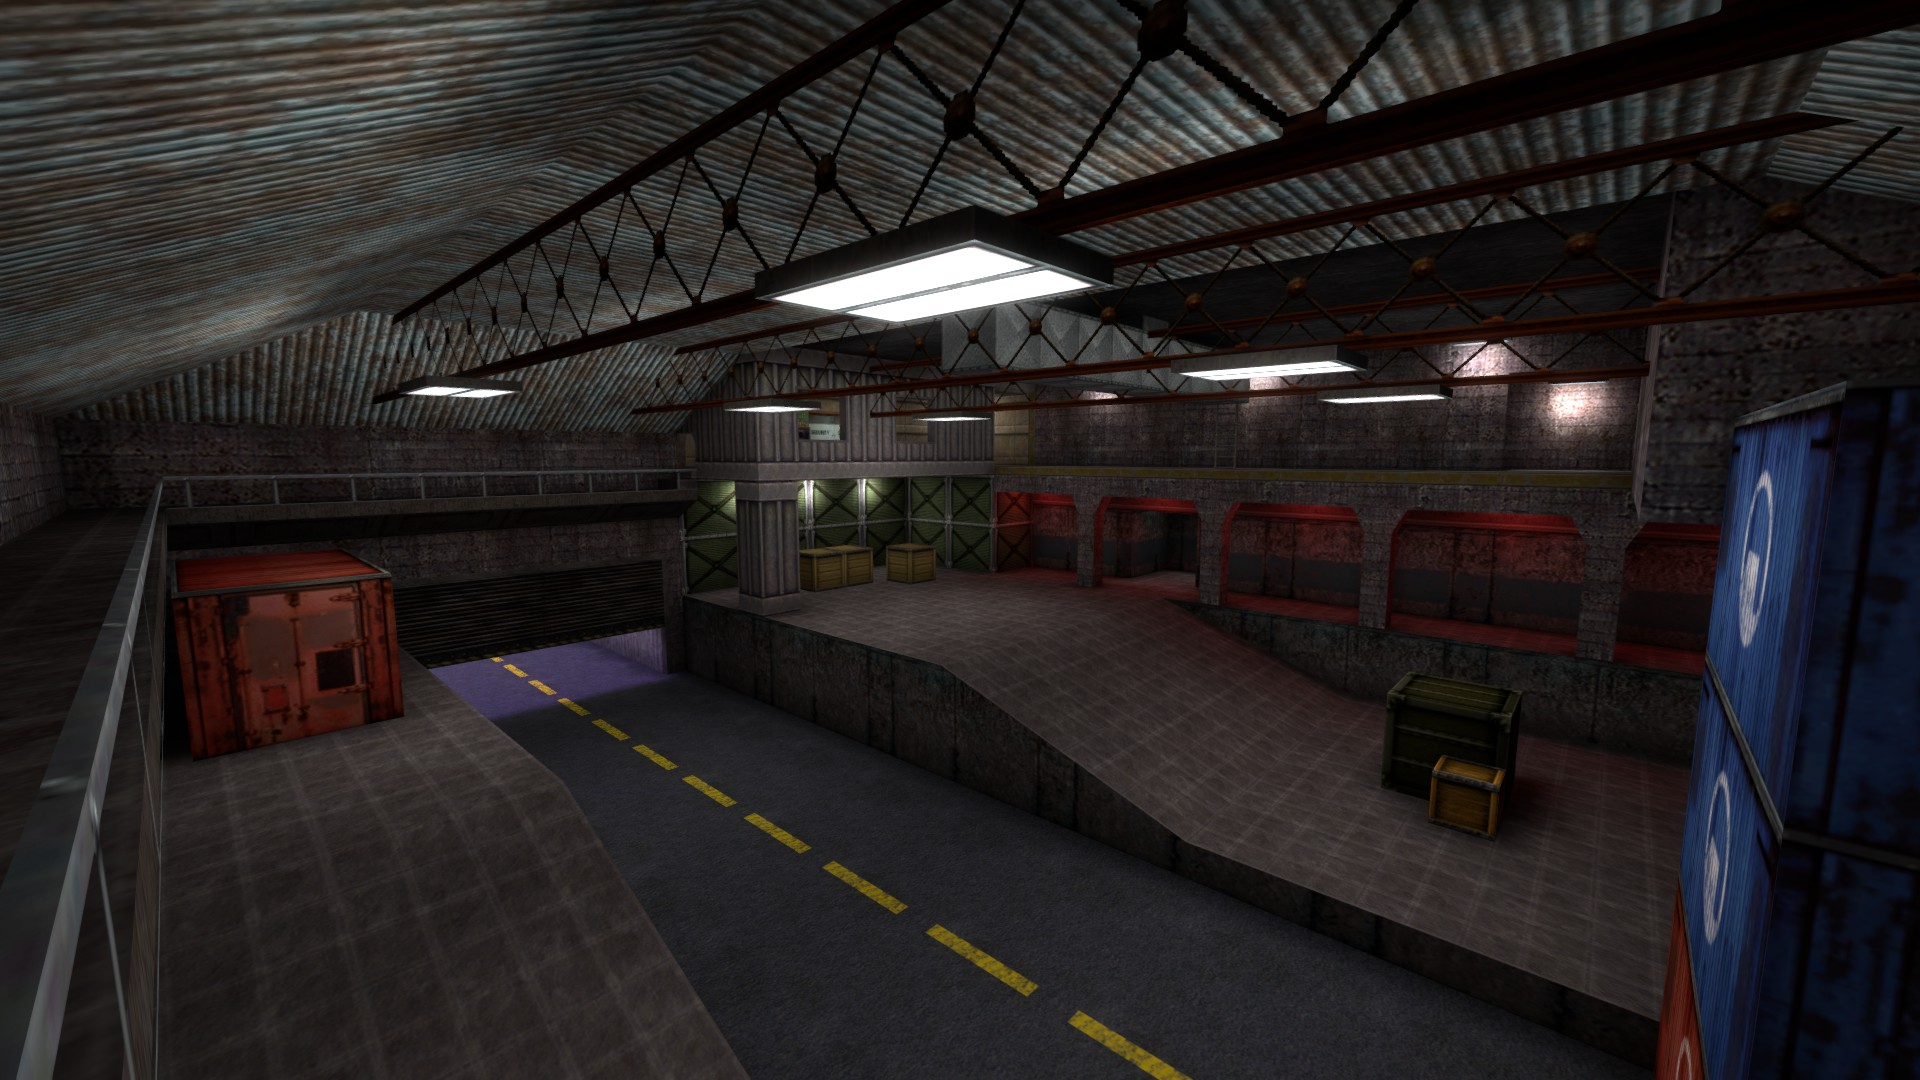 counter strike 1.6 source maps download